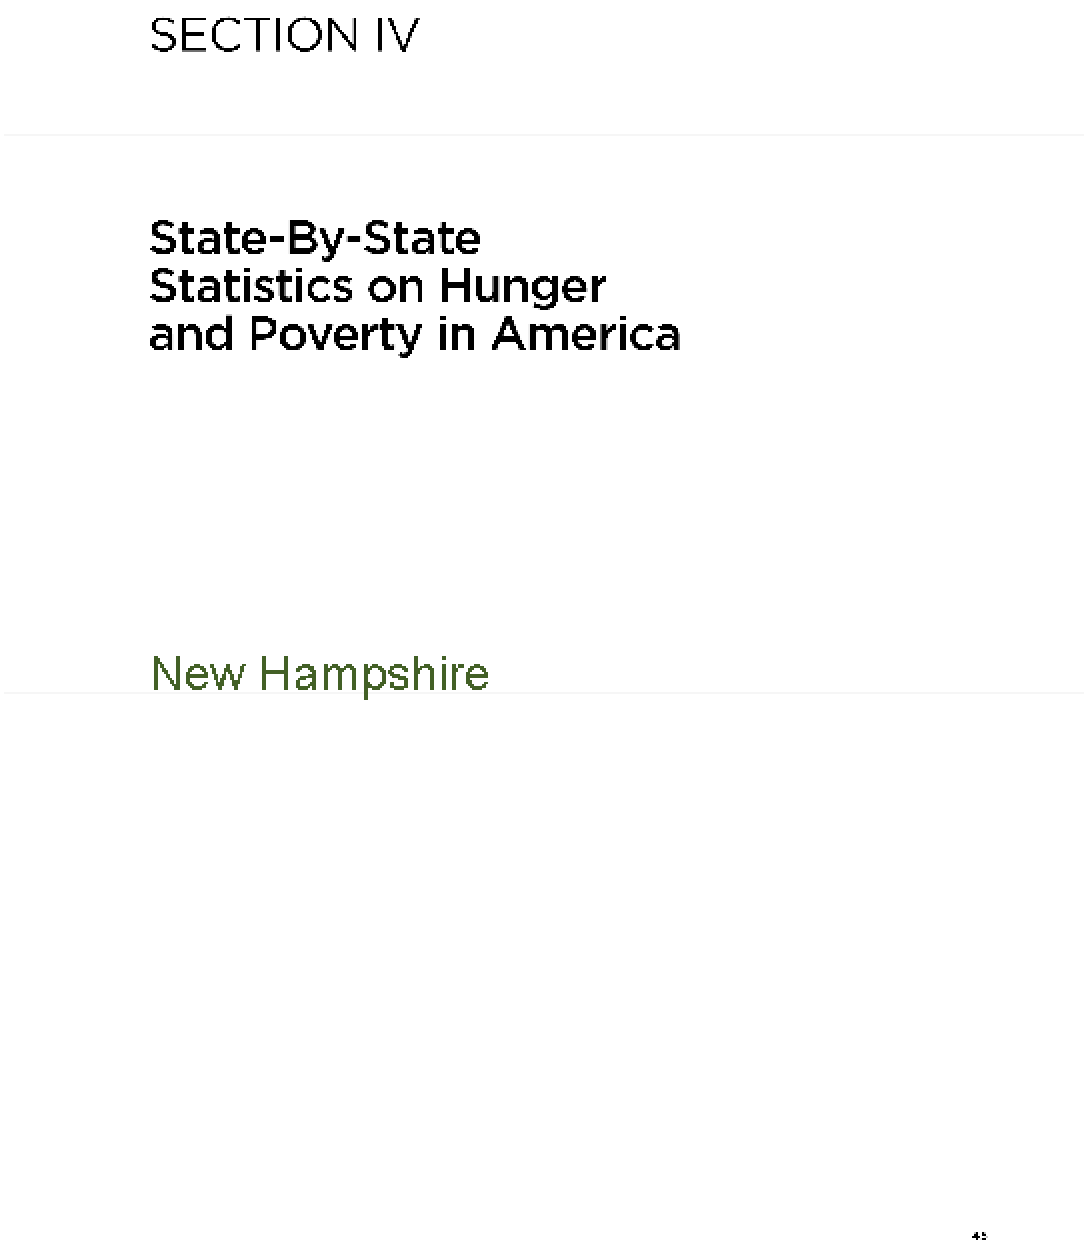 The Almanac of Hunger and Poverty in America 2010: New Hampshire